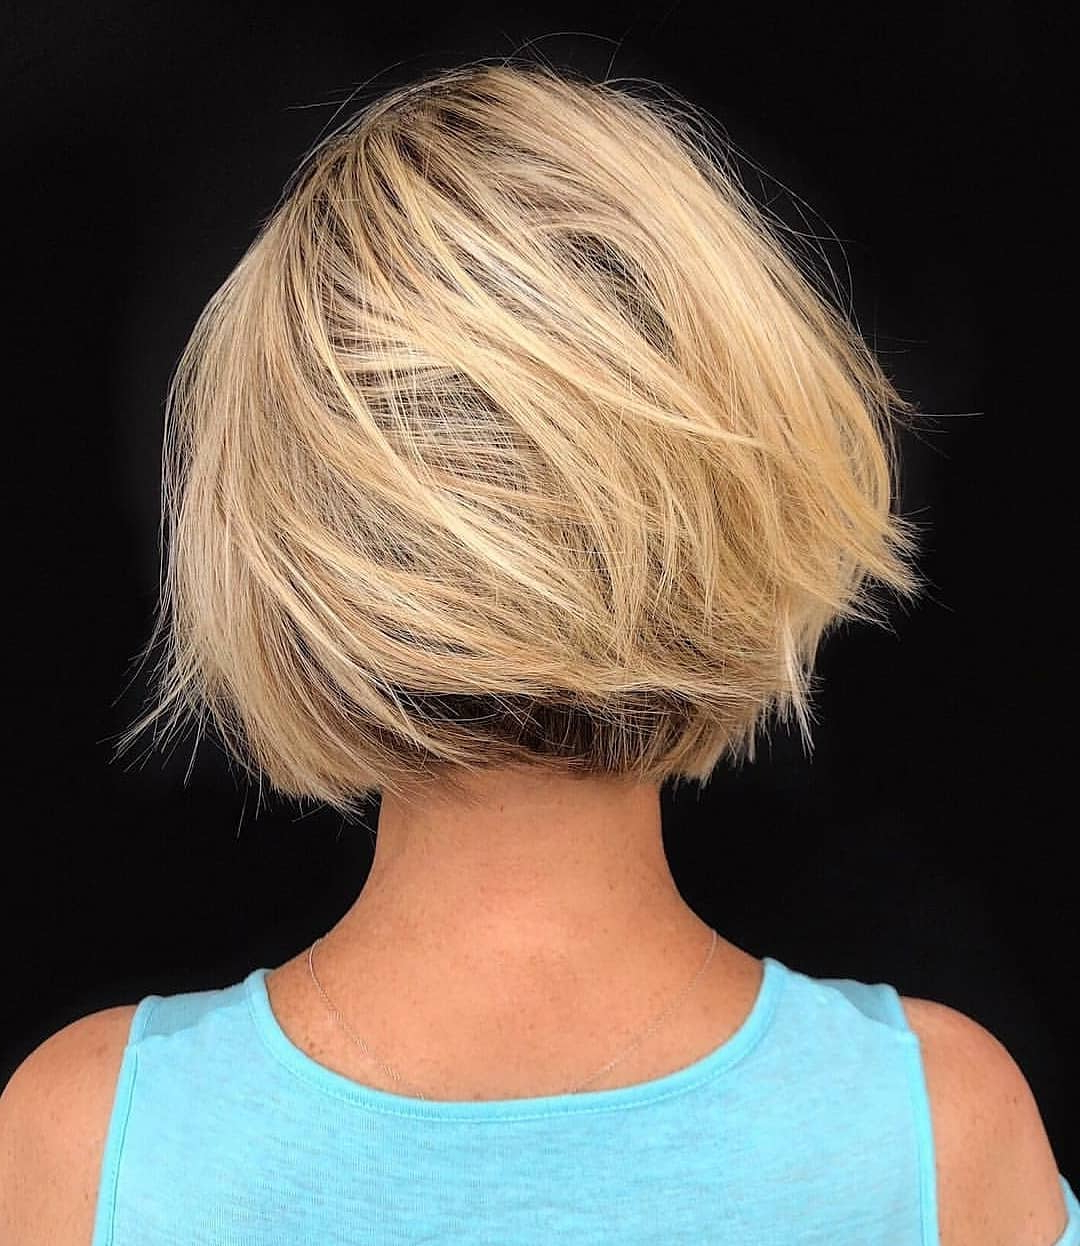 Top 10 Low Maintenance Short Bob Cuts For Thick Hair, Short Within Bob Hairstyles For Thick Hair (View 20 of 20)